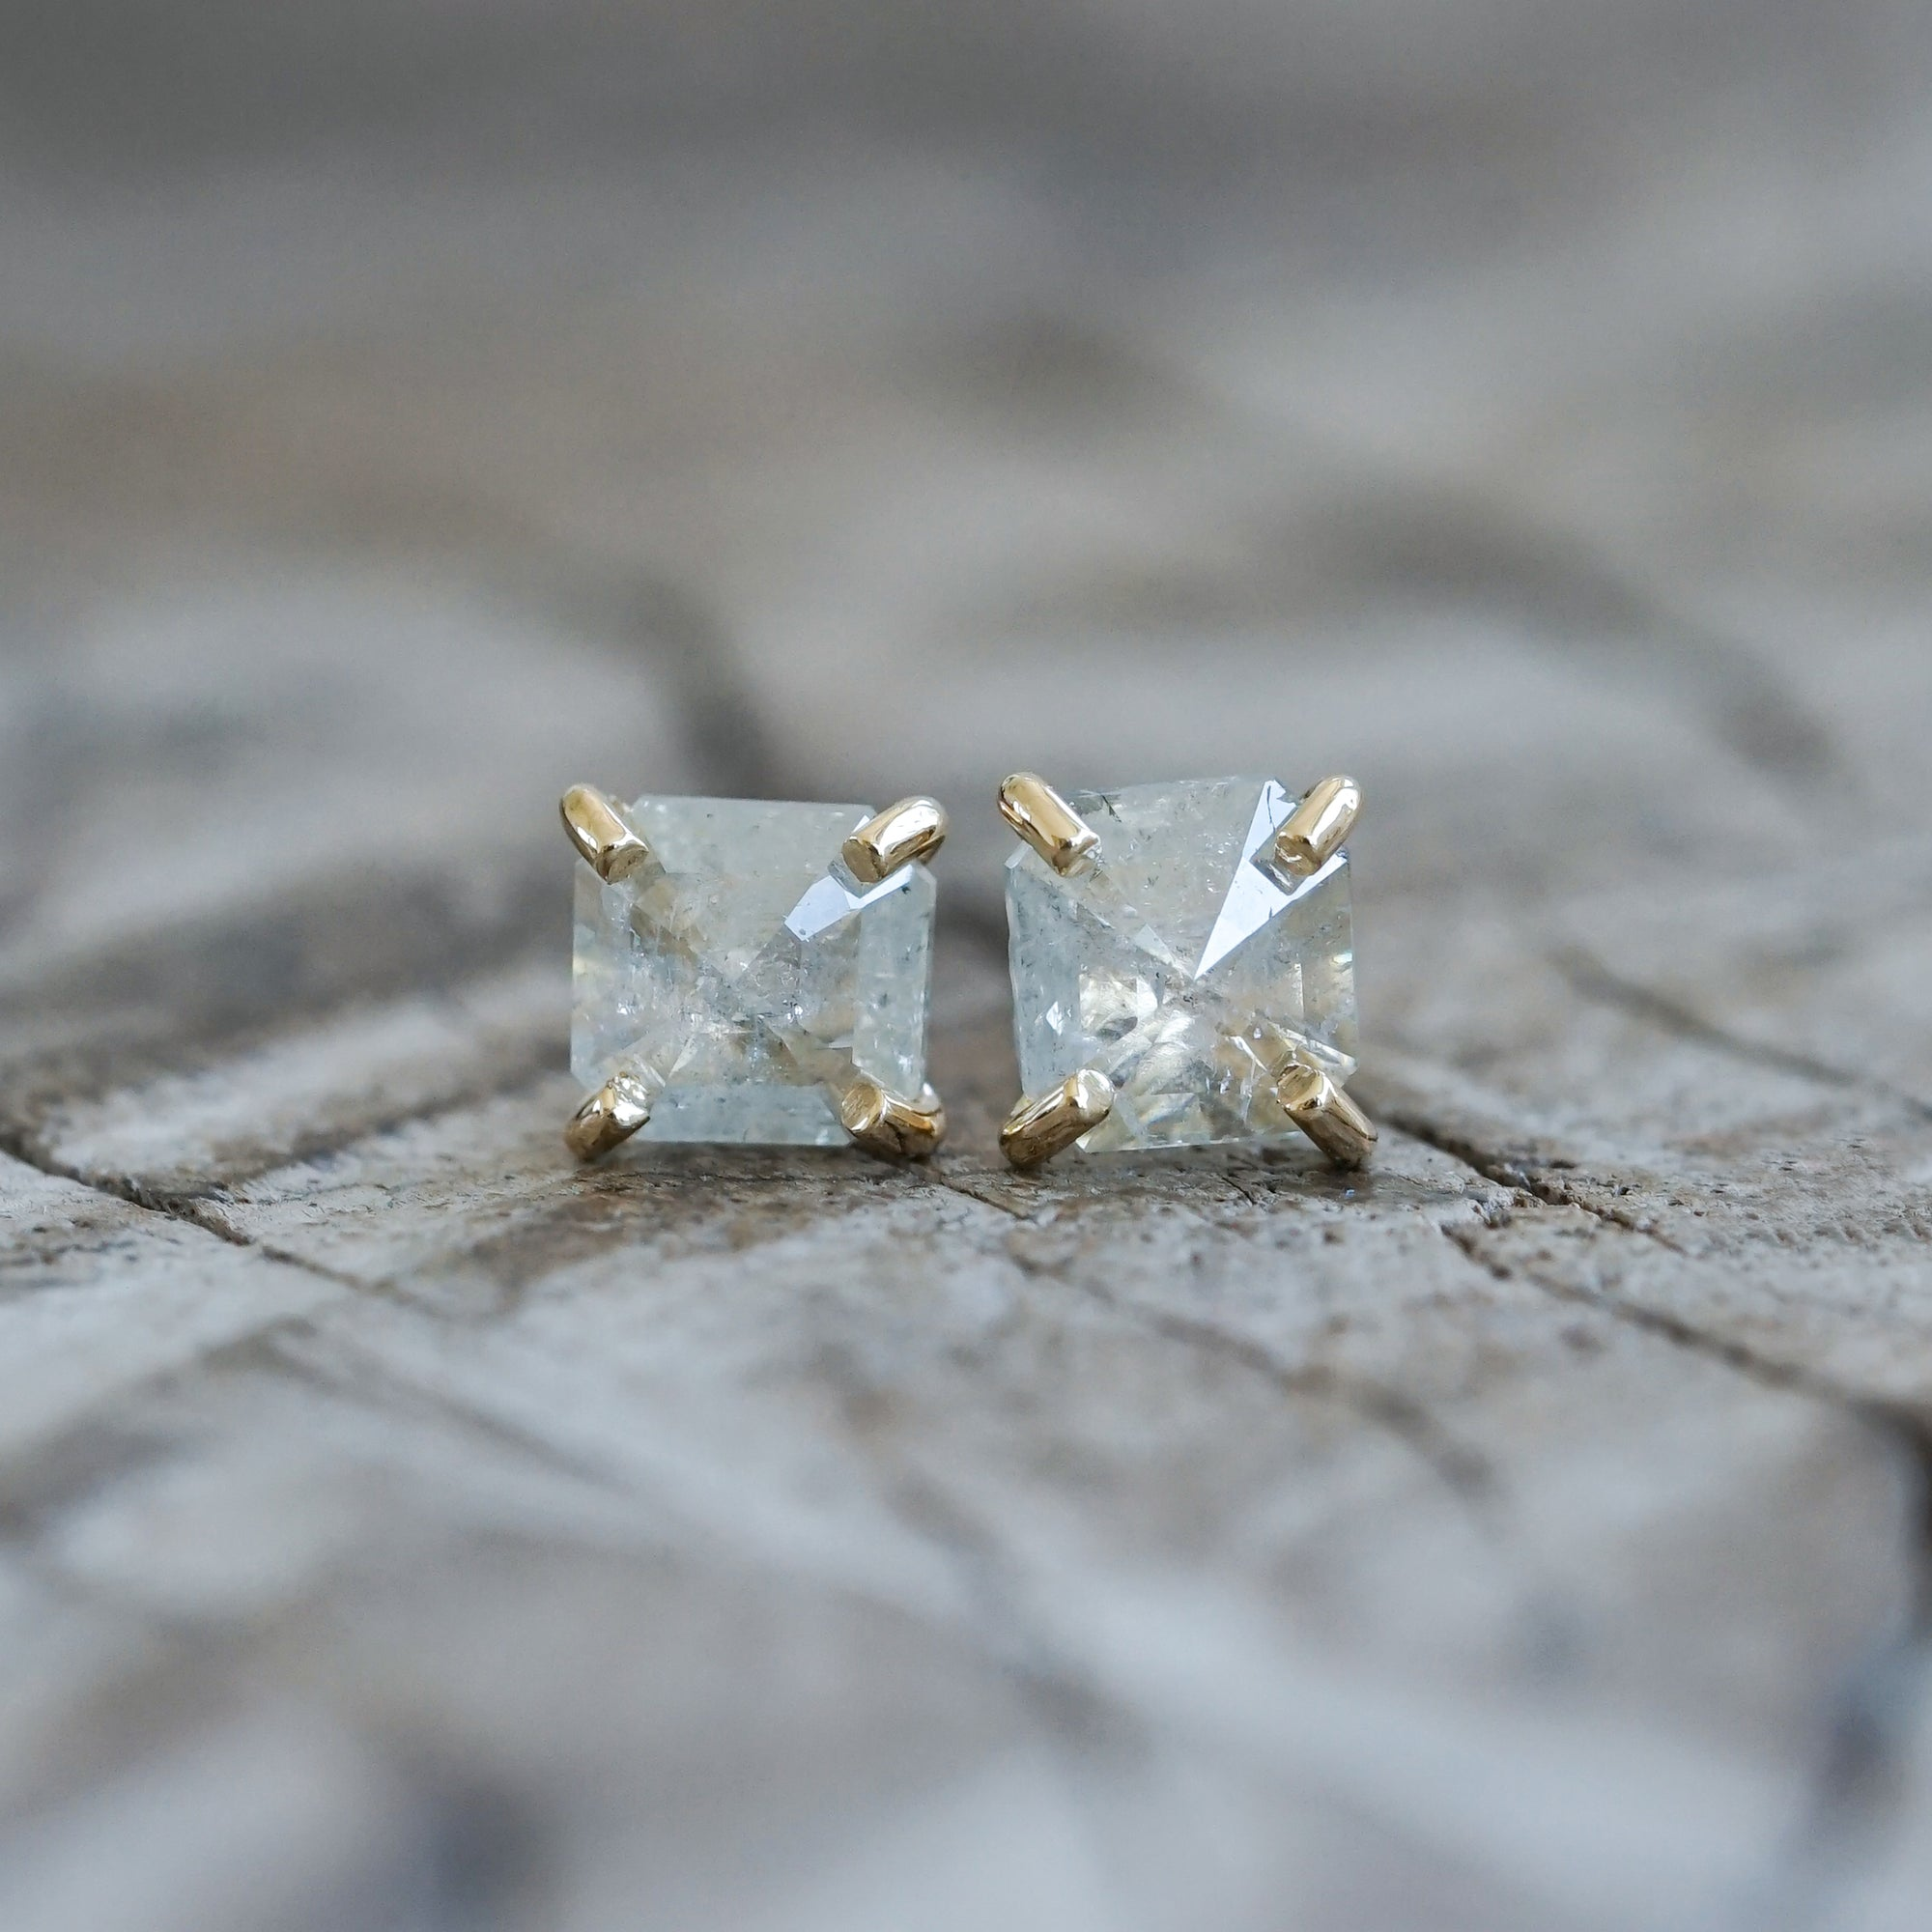 Rose Cut Diamond Earrings in Gold